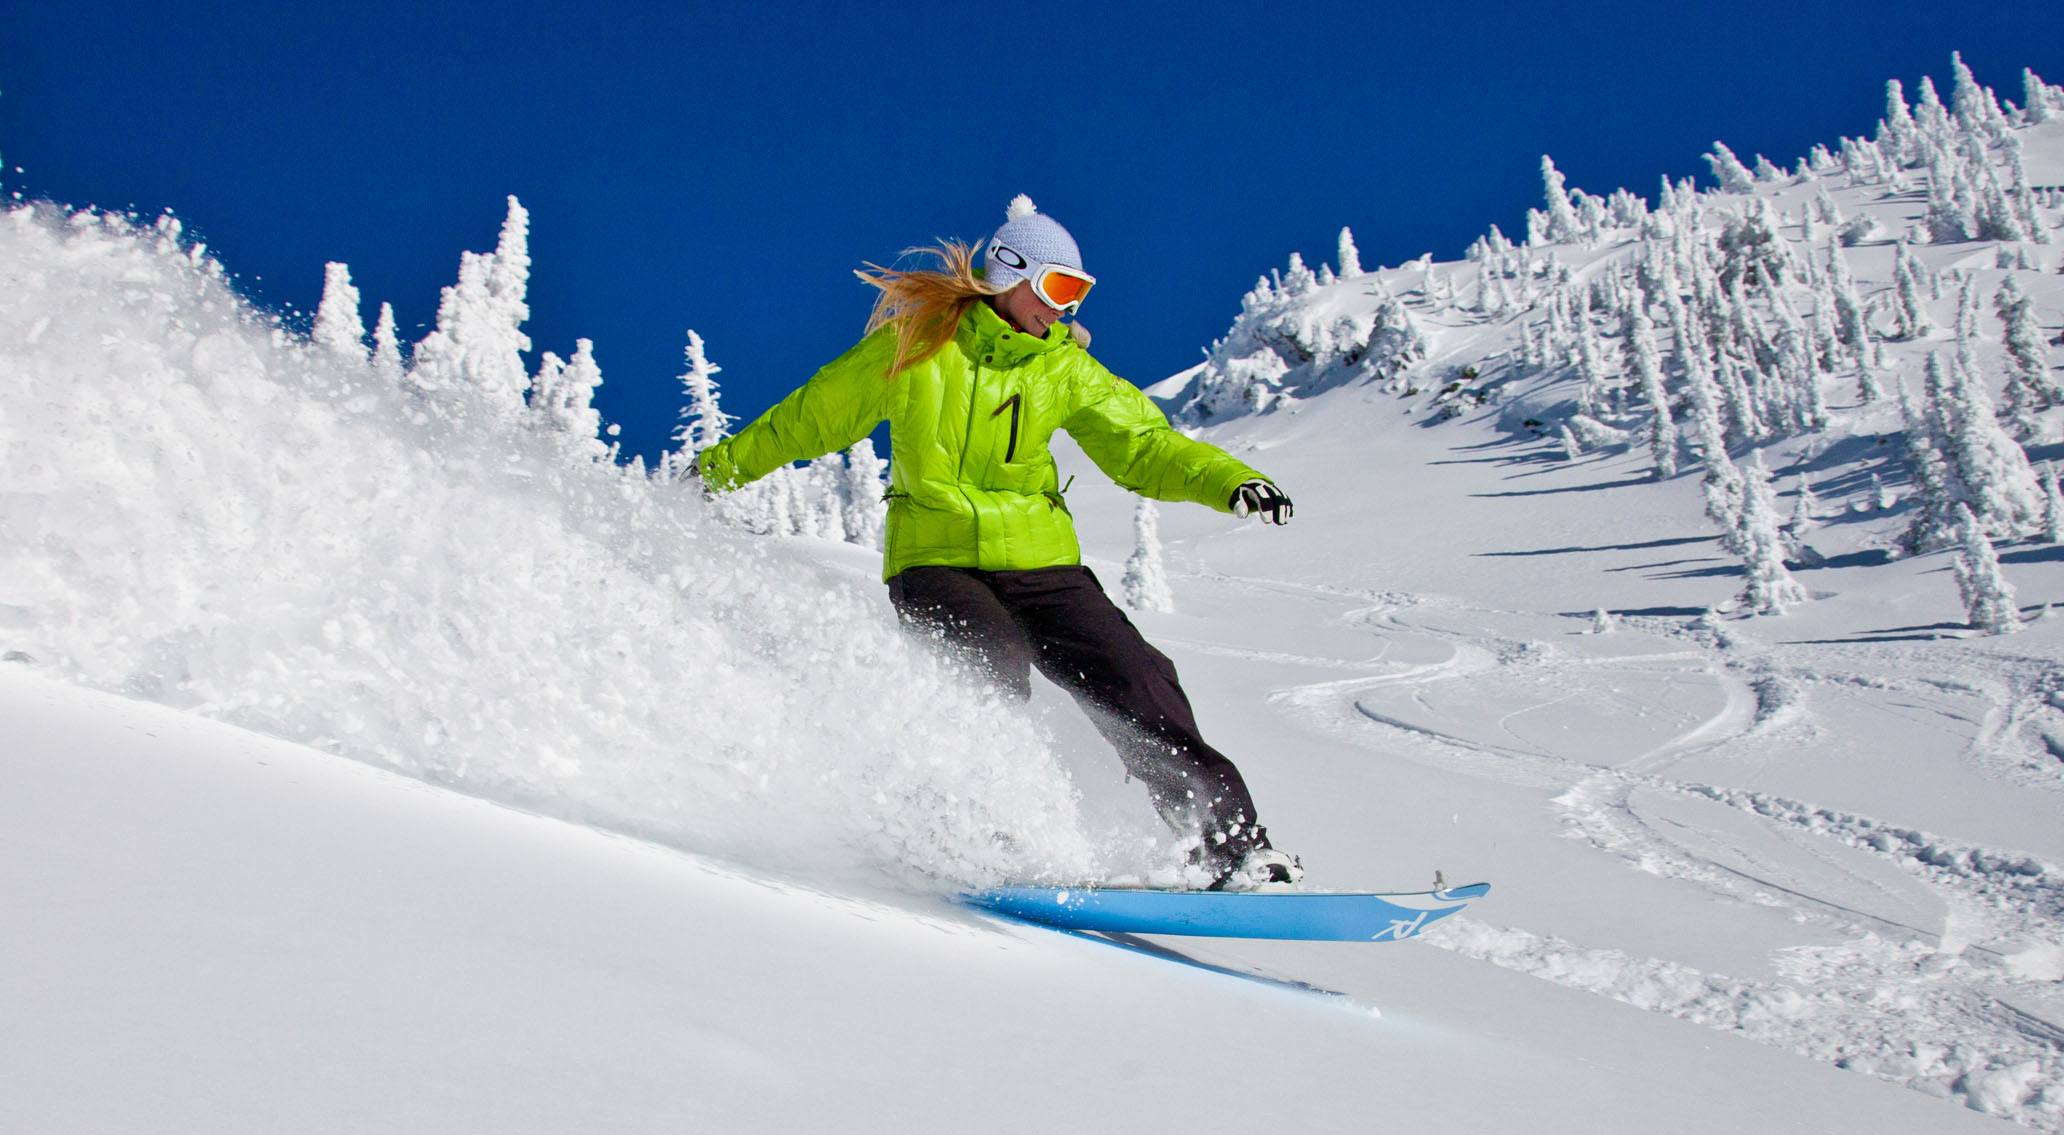 31 ski resorts to shred in bc this winter | daily hive vancouver